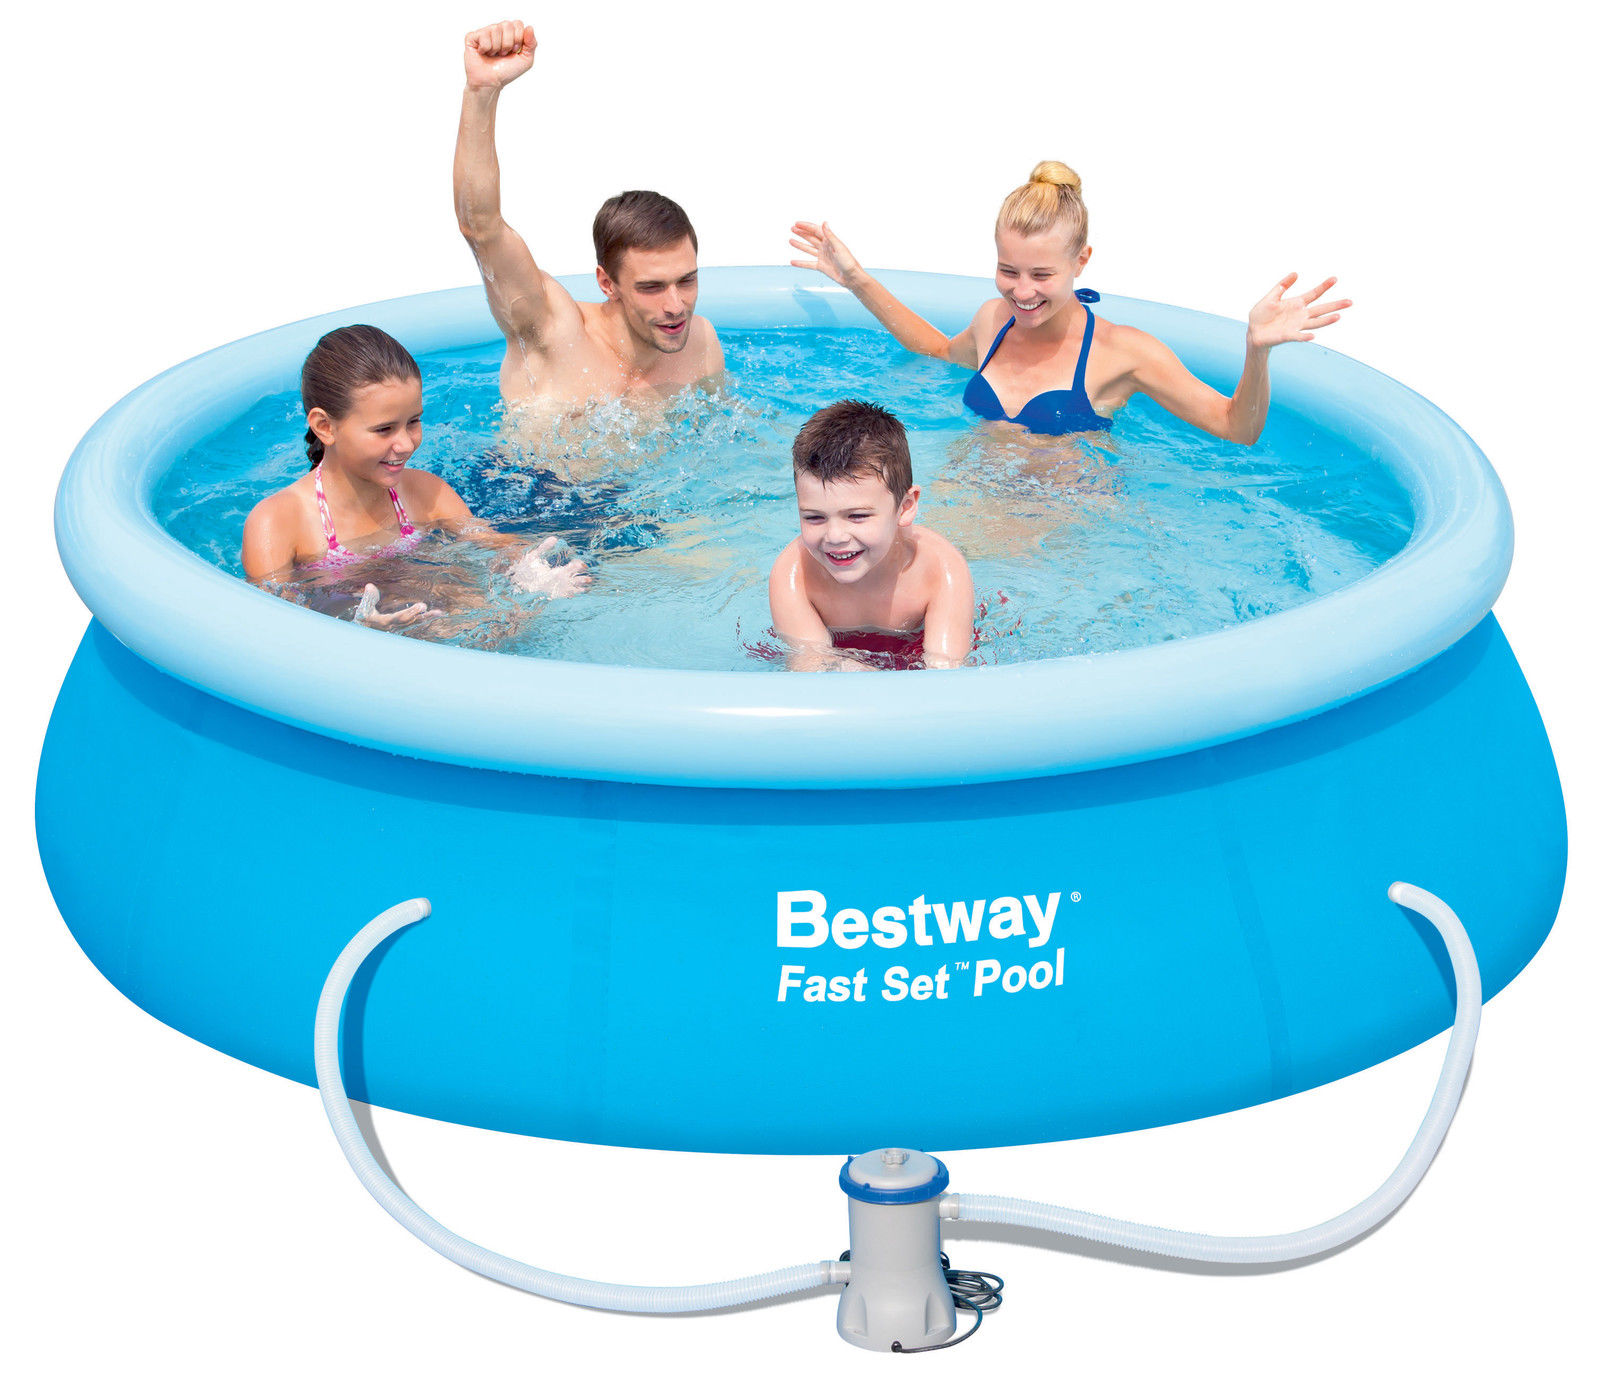 Bestway Fast Set Round Pool Outdoor Family Swimming Filter Pump 8ft 10ft 12ft Ebay